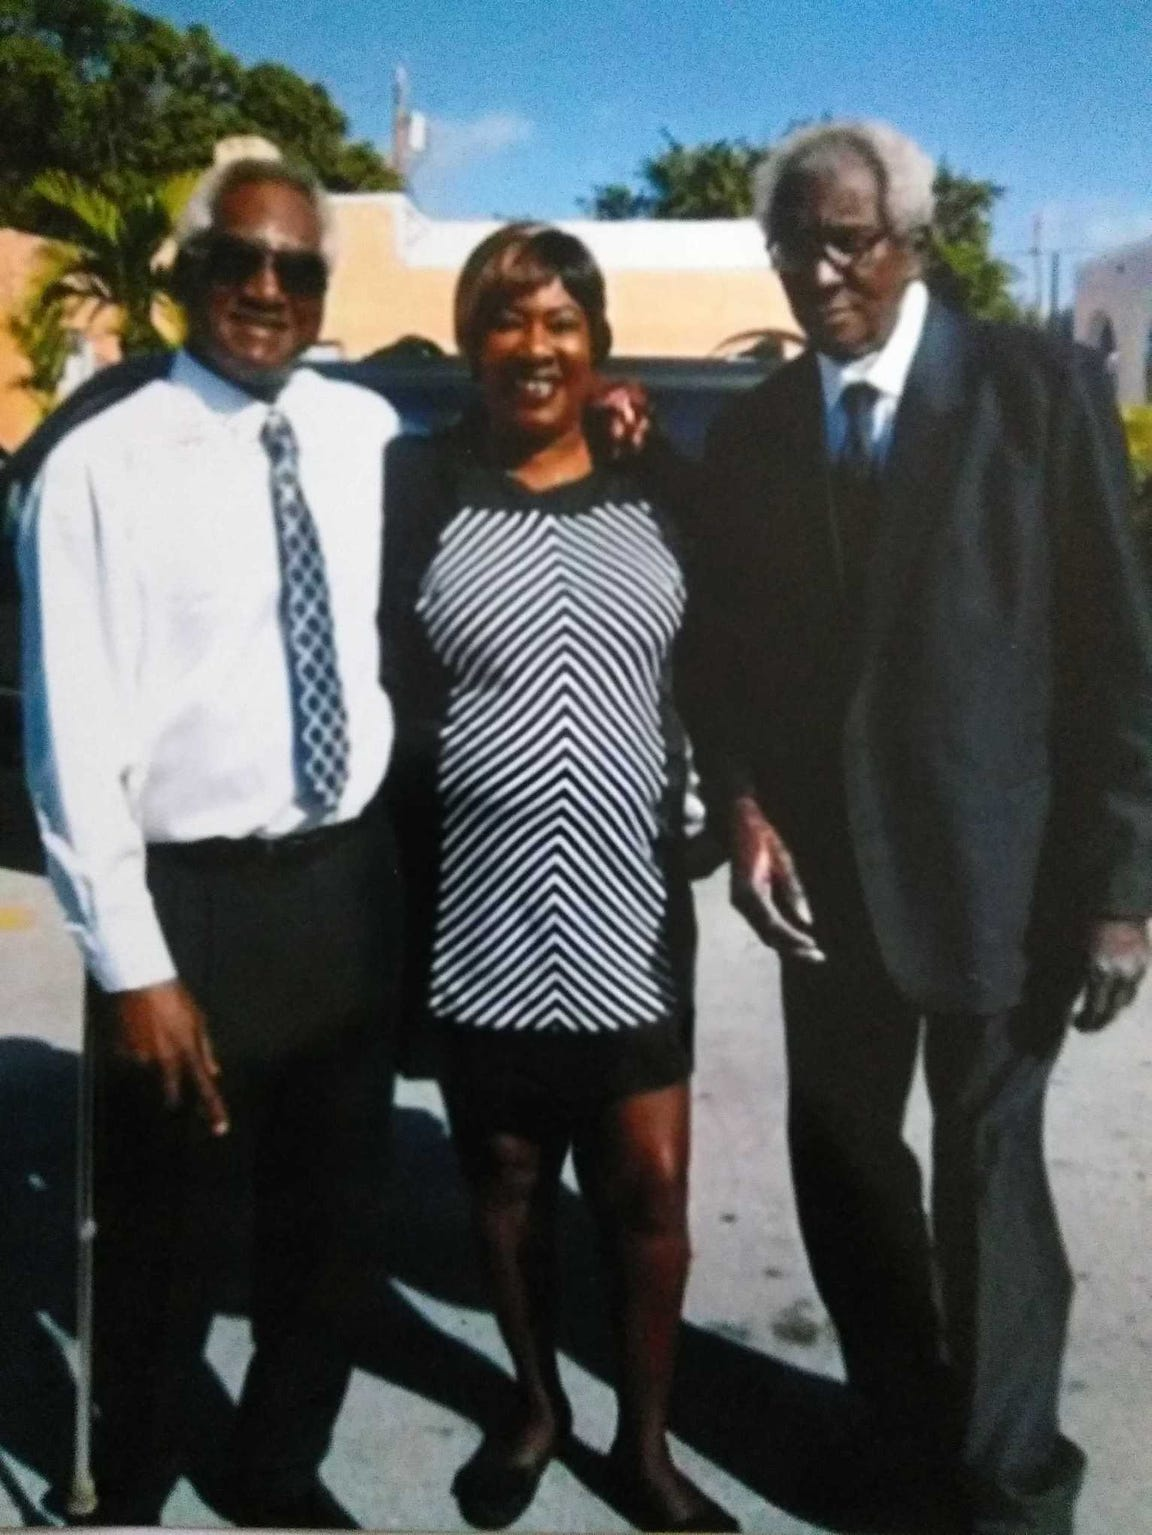 Coleman Felts, right, with his brother Larry McFarley and sister Toni McFarley. Felts wandered from the Golden Glades Nursing and Rehabilitation Center in Miami in December 2015 and drowned in a lake.